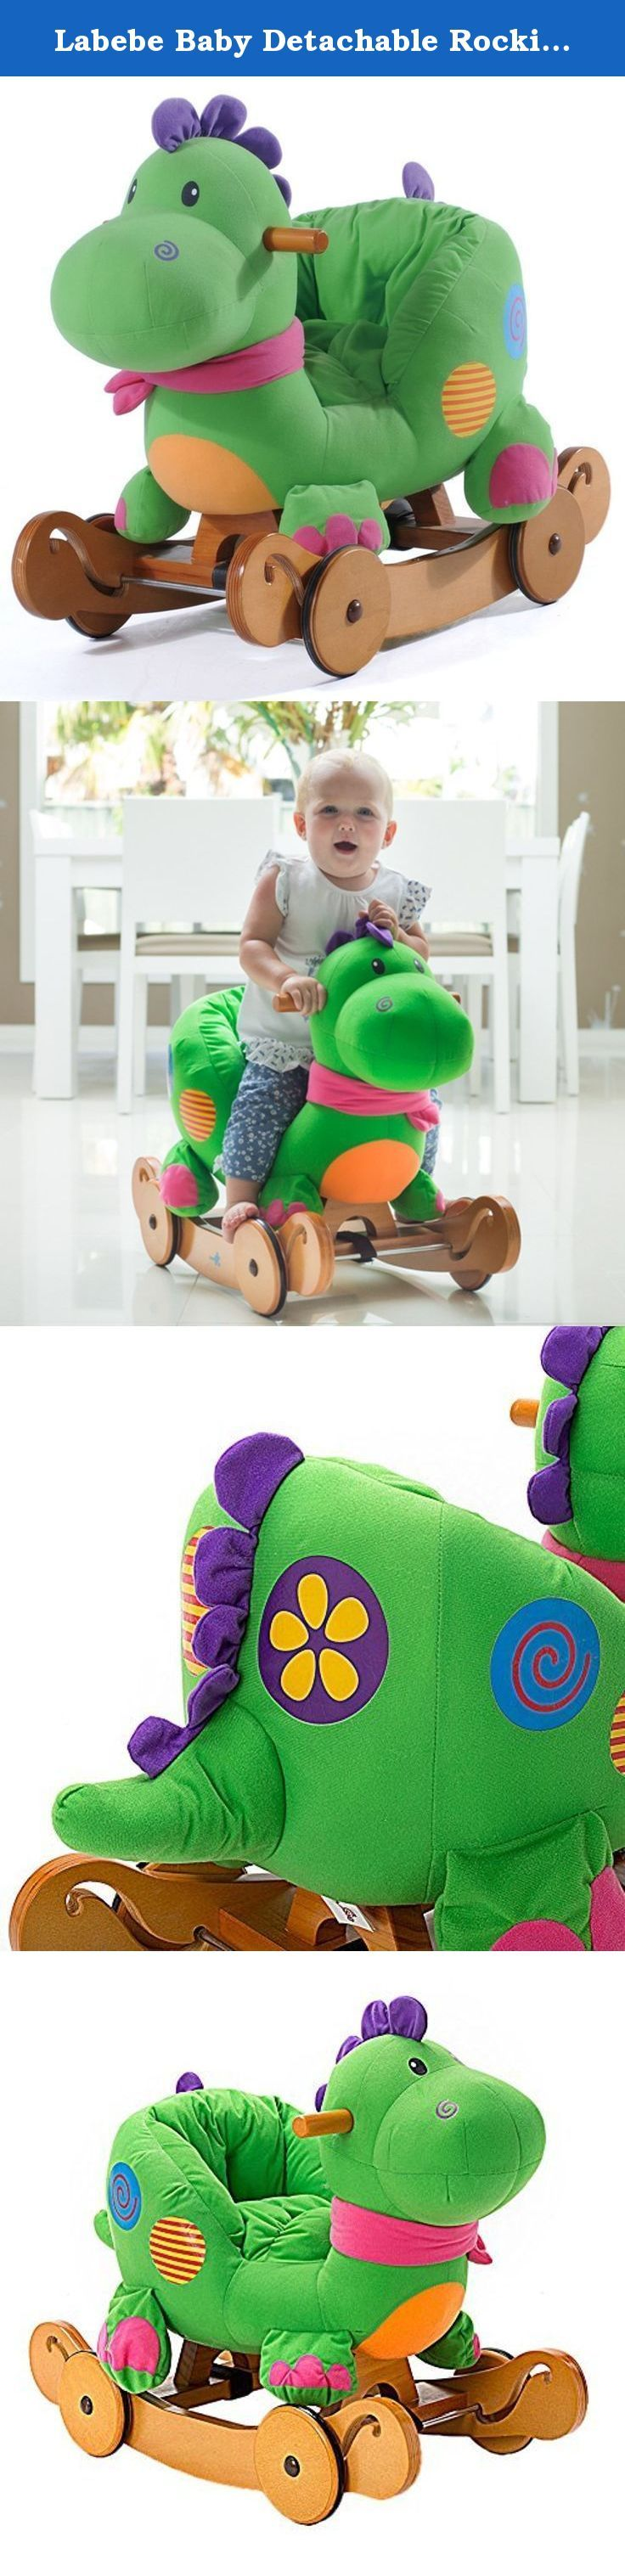 Labebe Baby Detachable Rocking Horse Green Dinosaur Rocker Ride on Toy. Feet off the ground motion for children to feel is very wonderful. Rocking back and forth, with the pony activities together,be able to fully experience the charm of inertia, at the same time it can practice your baby's balance,coordination. Also,it's a good training for baby's courage and adventurous spirit, improving the baby's self-confidence. Horse riding can also prevent sensory integration disorder. Material…